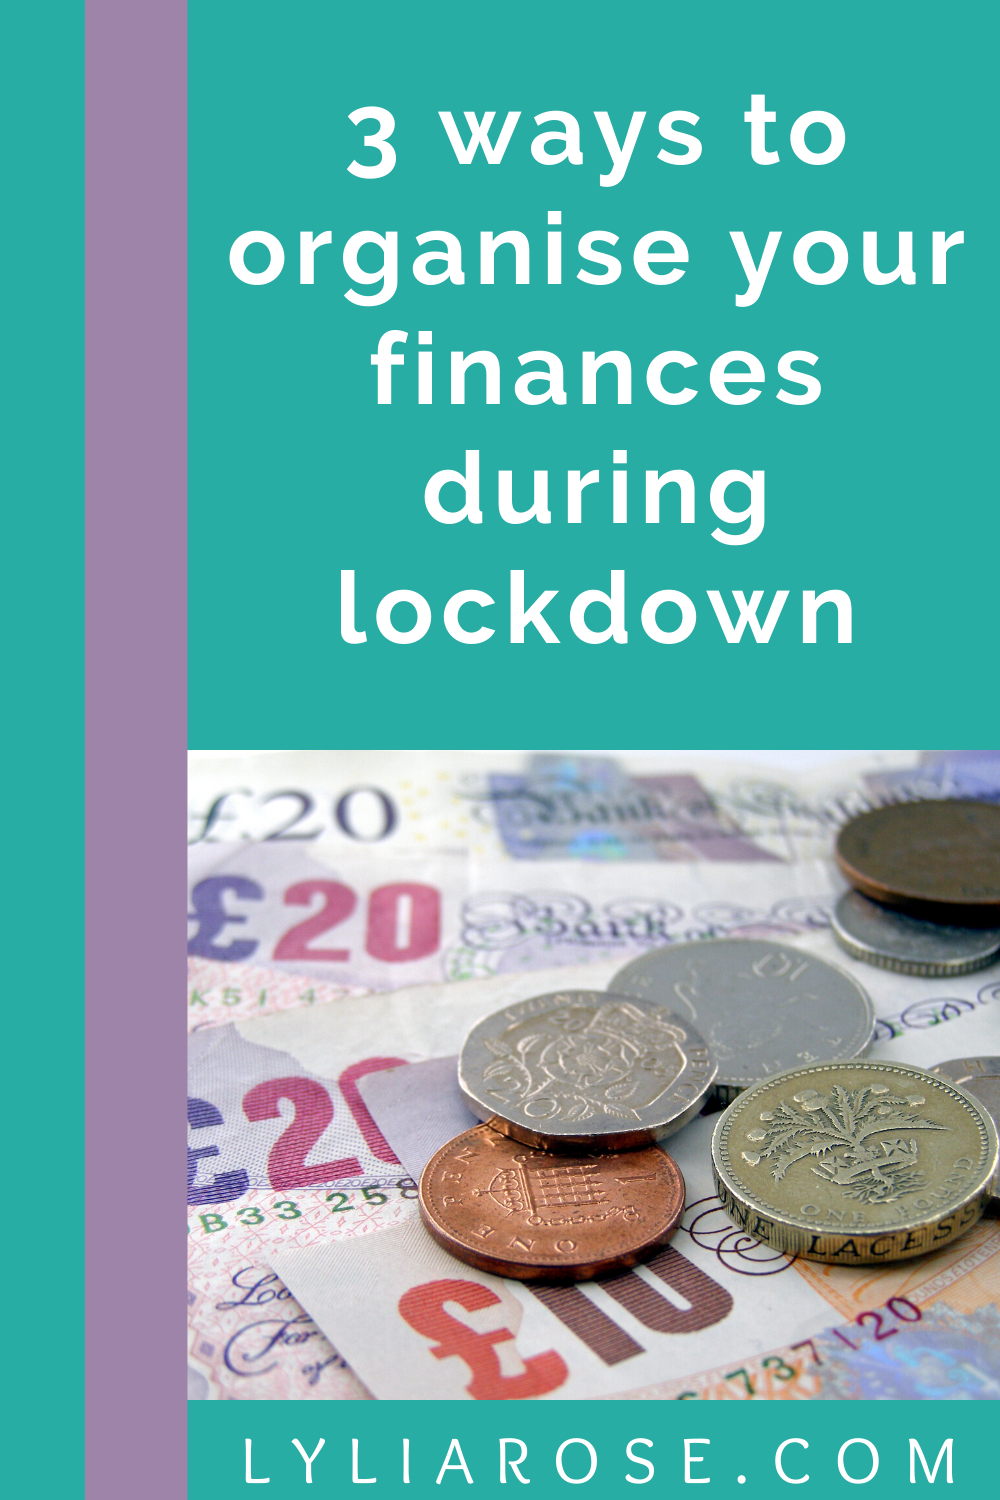 3 ways to organise your finances during lockdown (1)